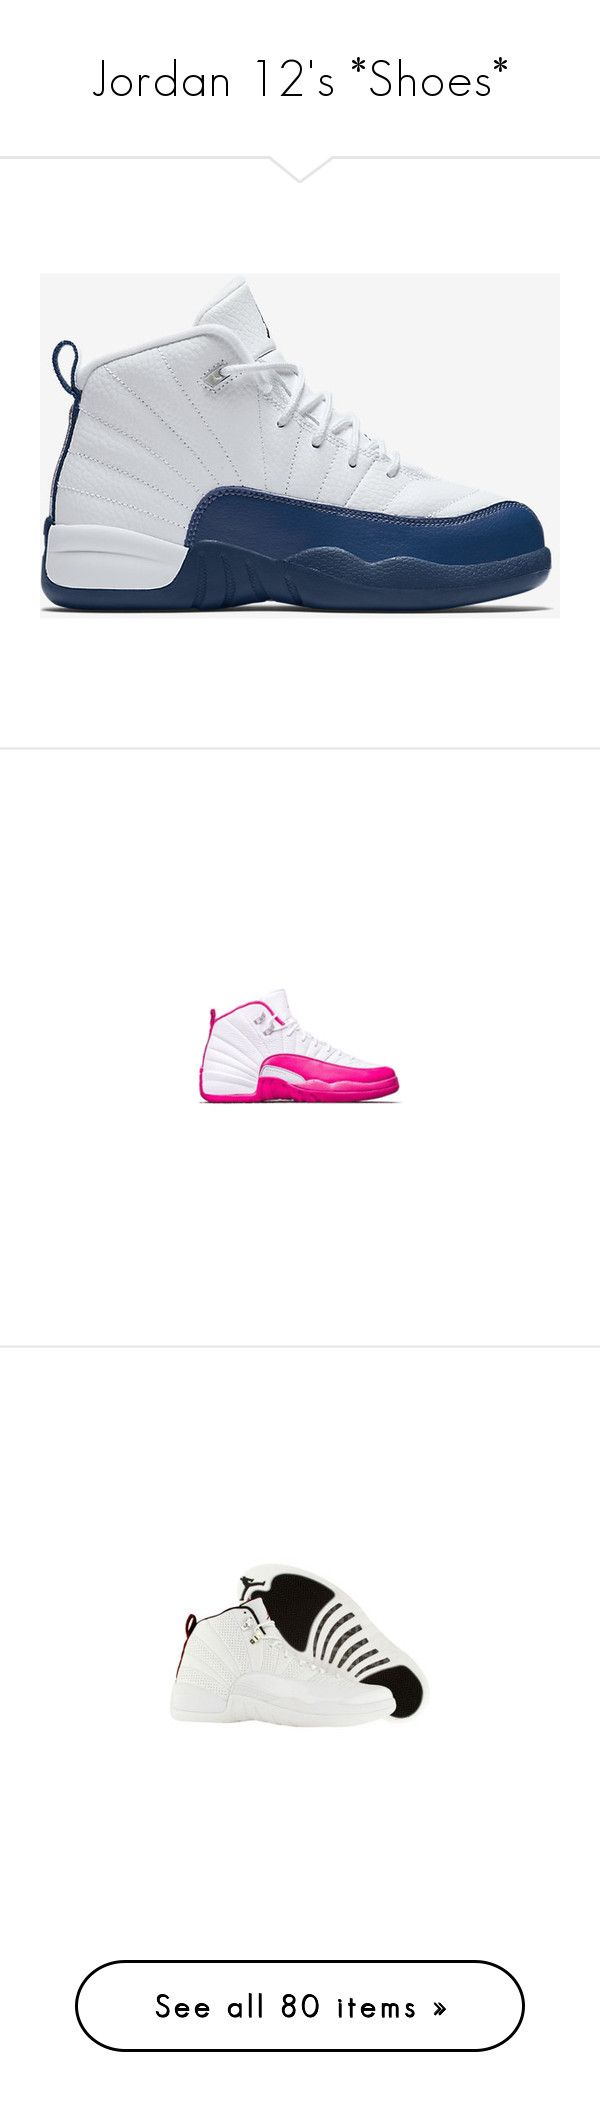 Sillas vintage el rinc 243 n di ree -  Jordan 12 S Shoes By Queenswag245 Liked On Polyvore Featuring Shoes